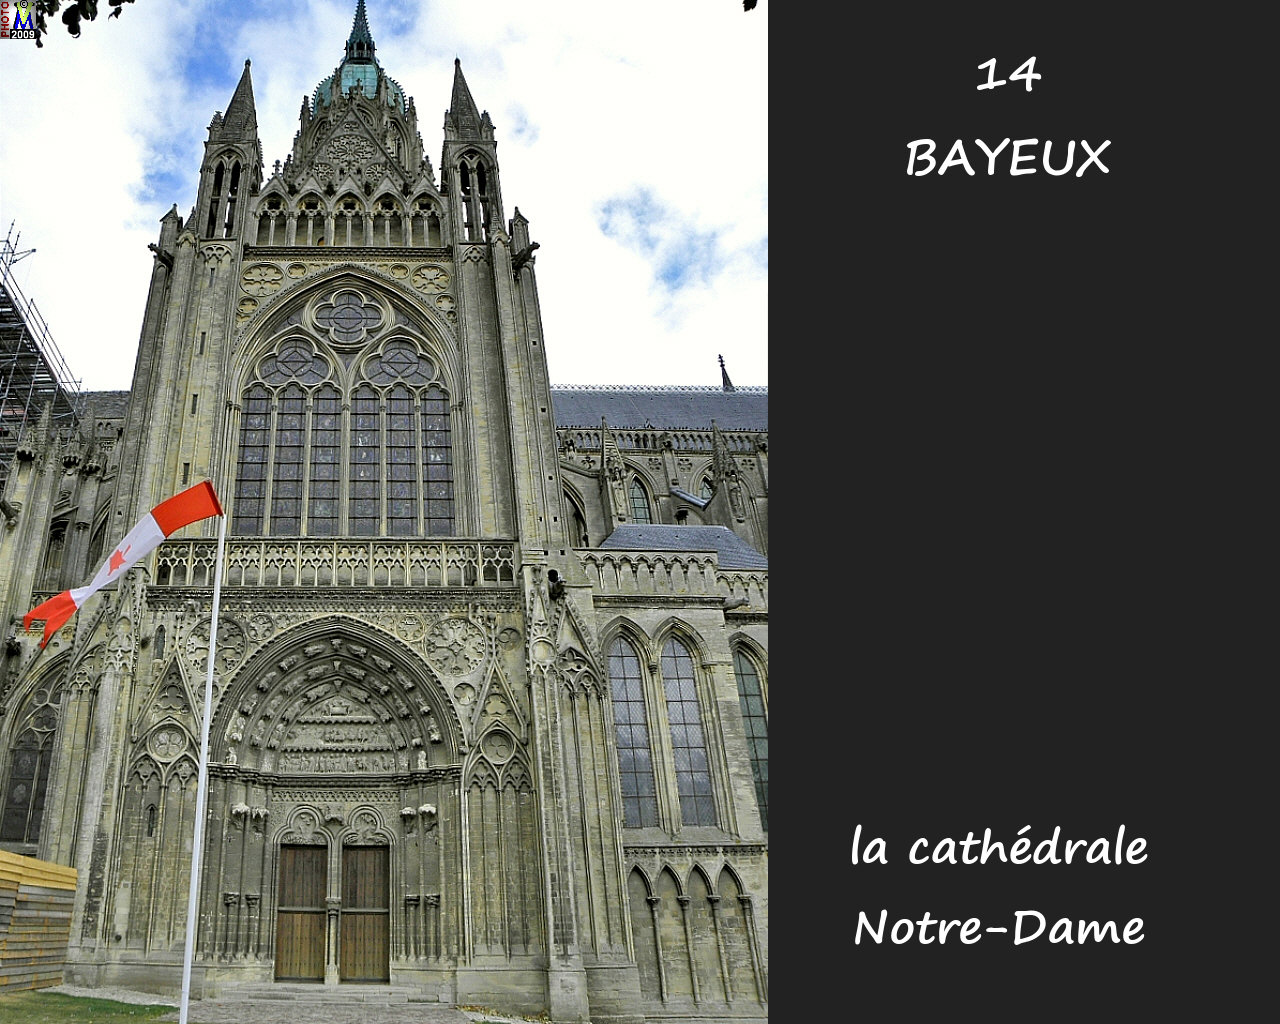 14BAYEUX_cathedrale_106.jpg